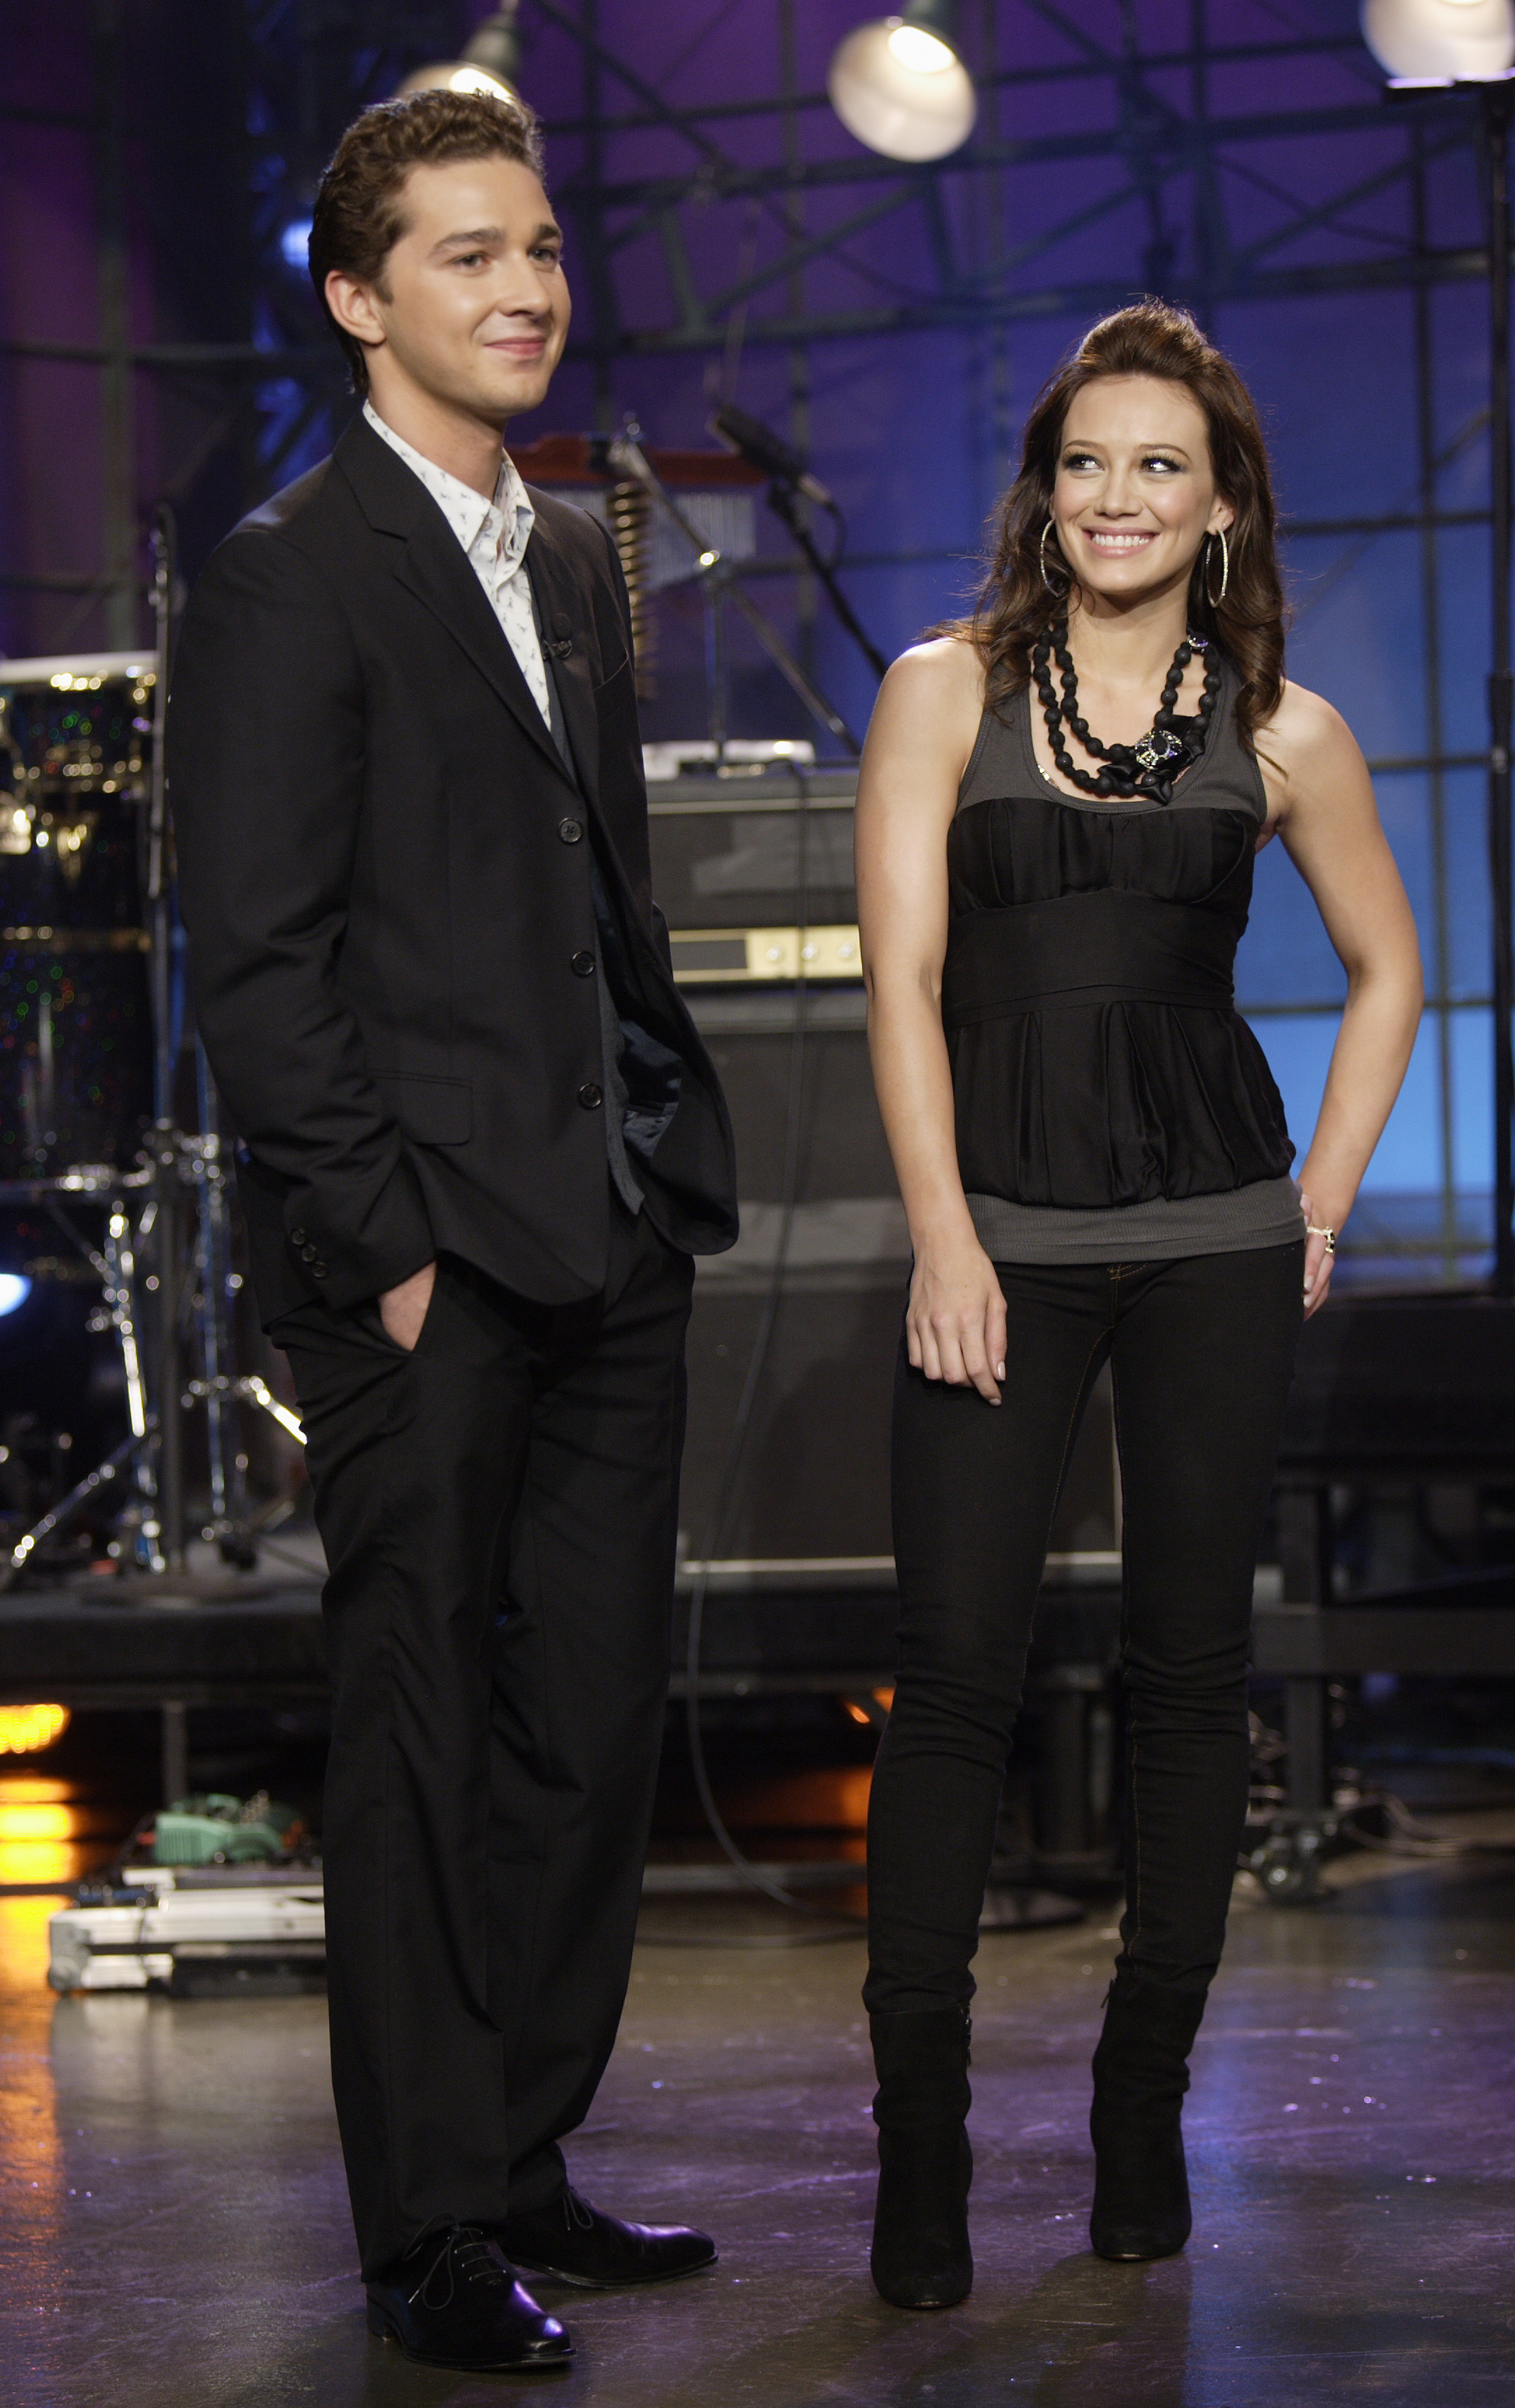 """Actor Shia LaBeouf and musical guest Hilary Duff on """"The Tonight Show"""" on April 2, 2007."""